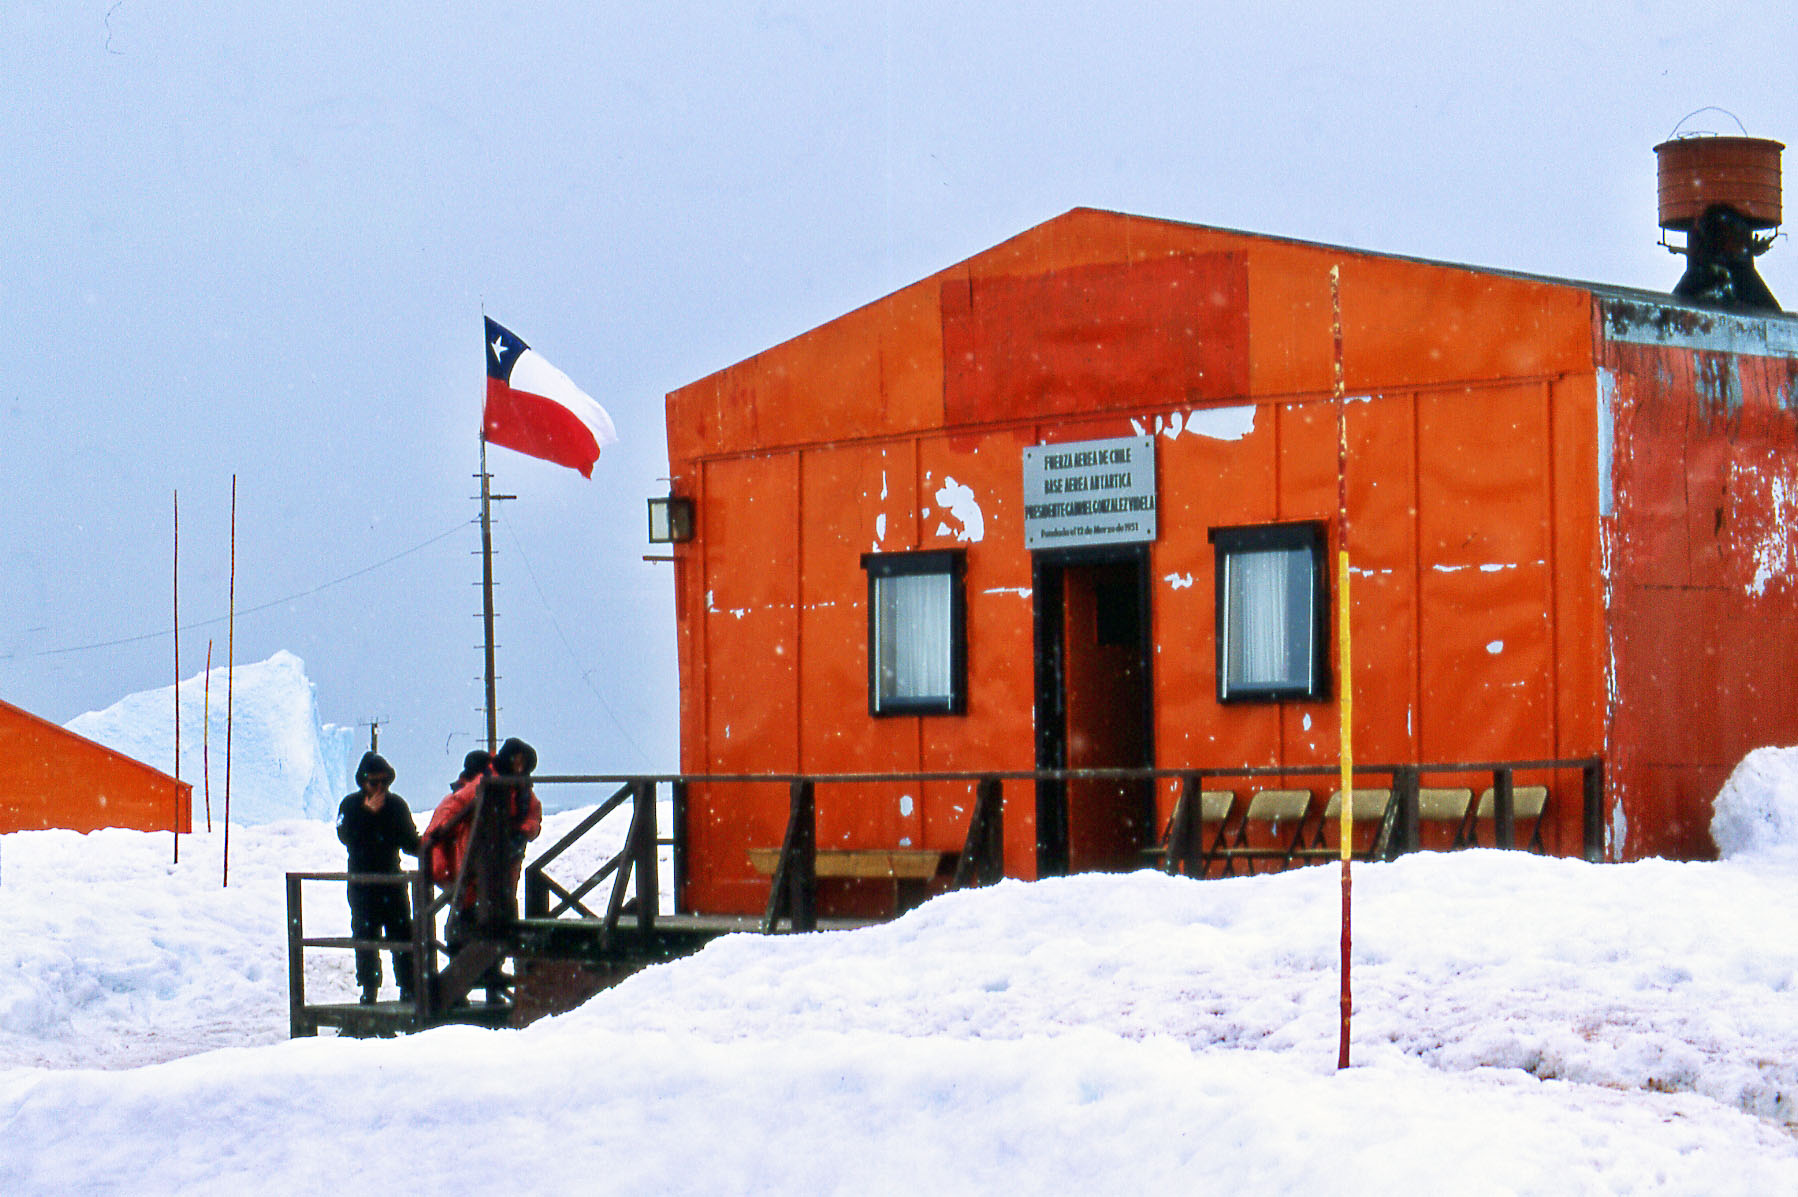 antarctic research station of chile  antarctic penisular